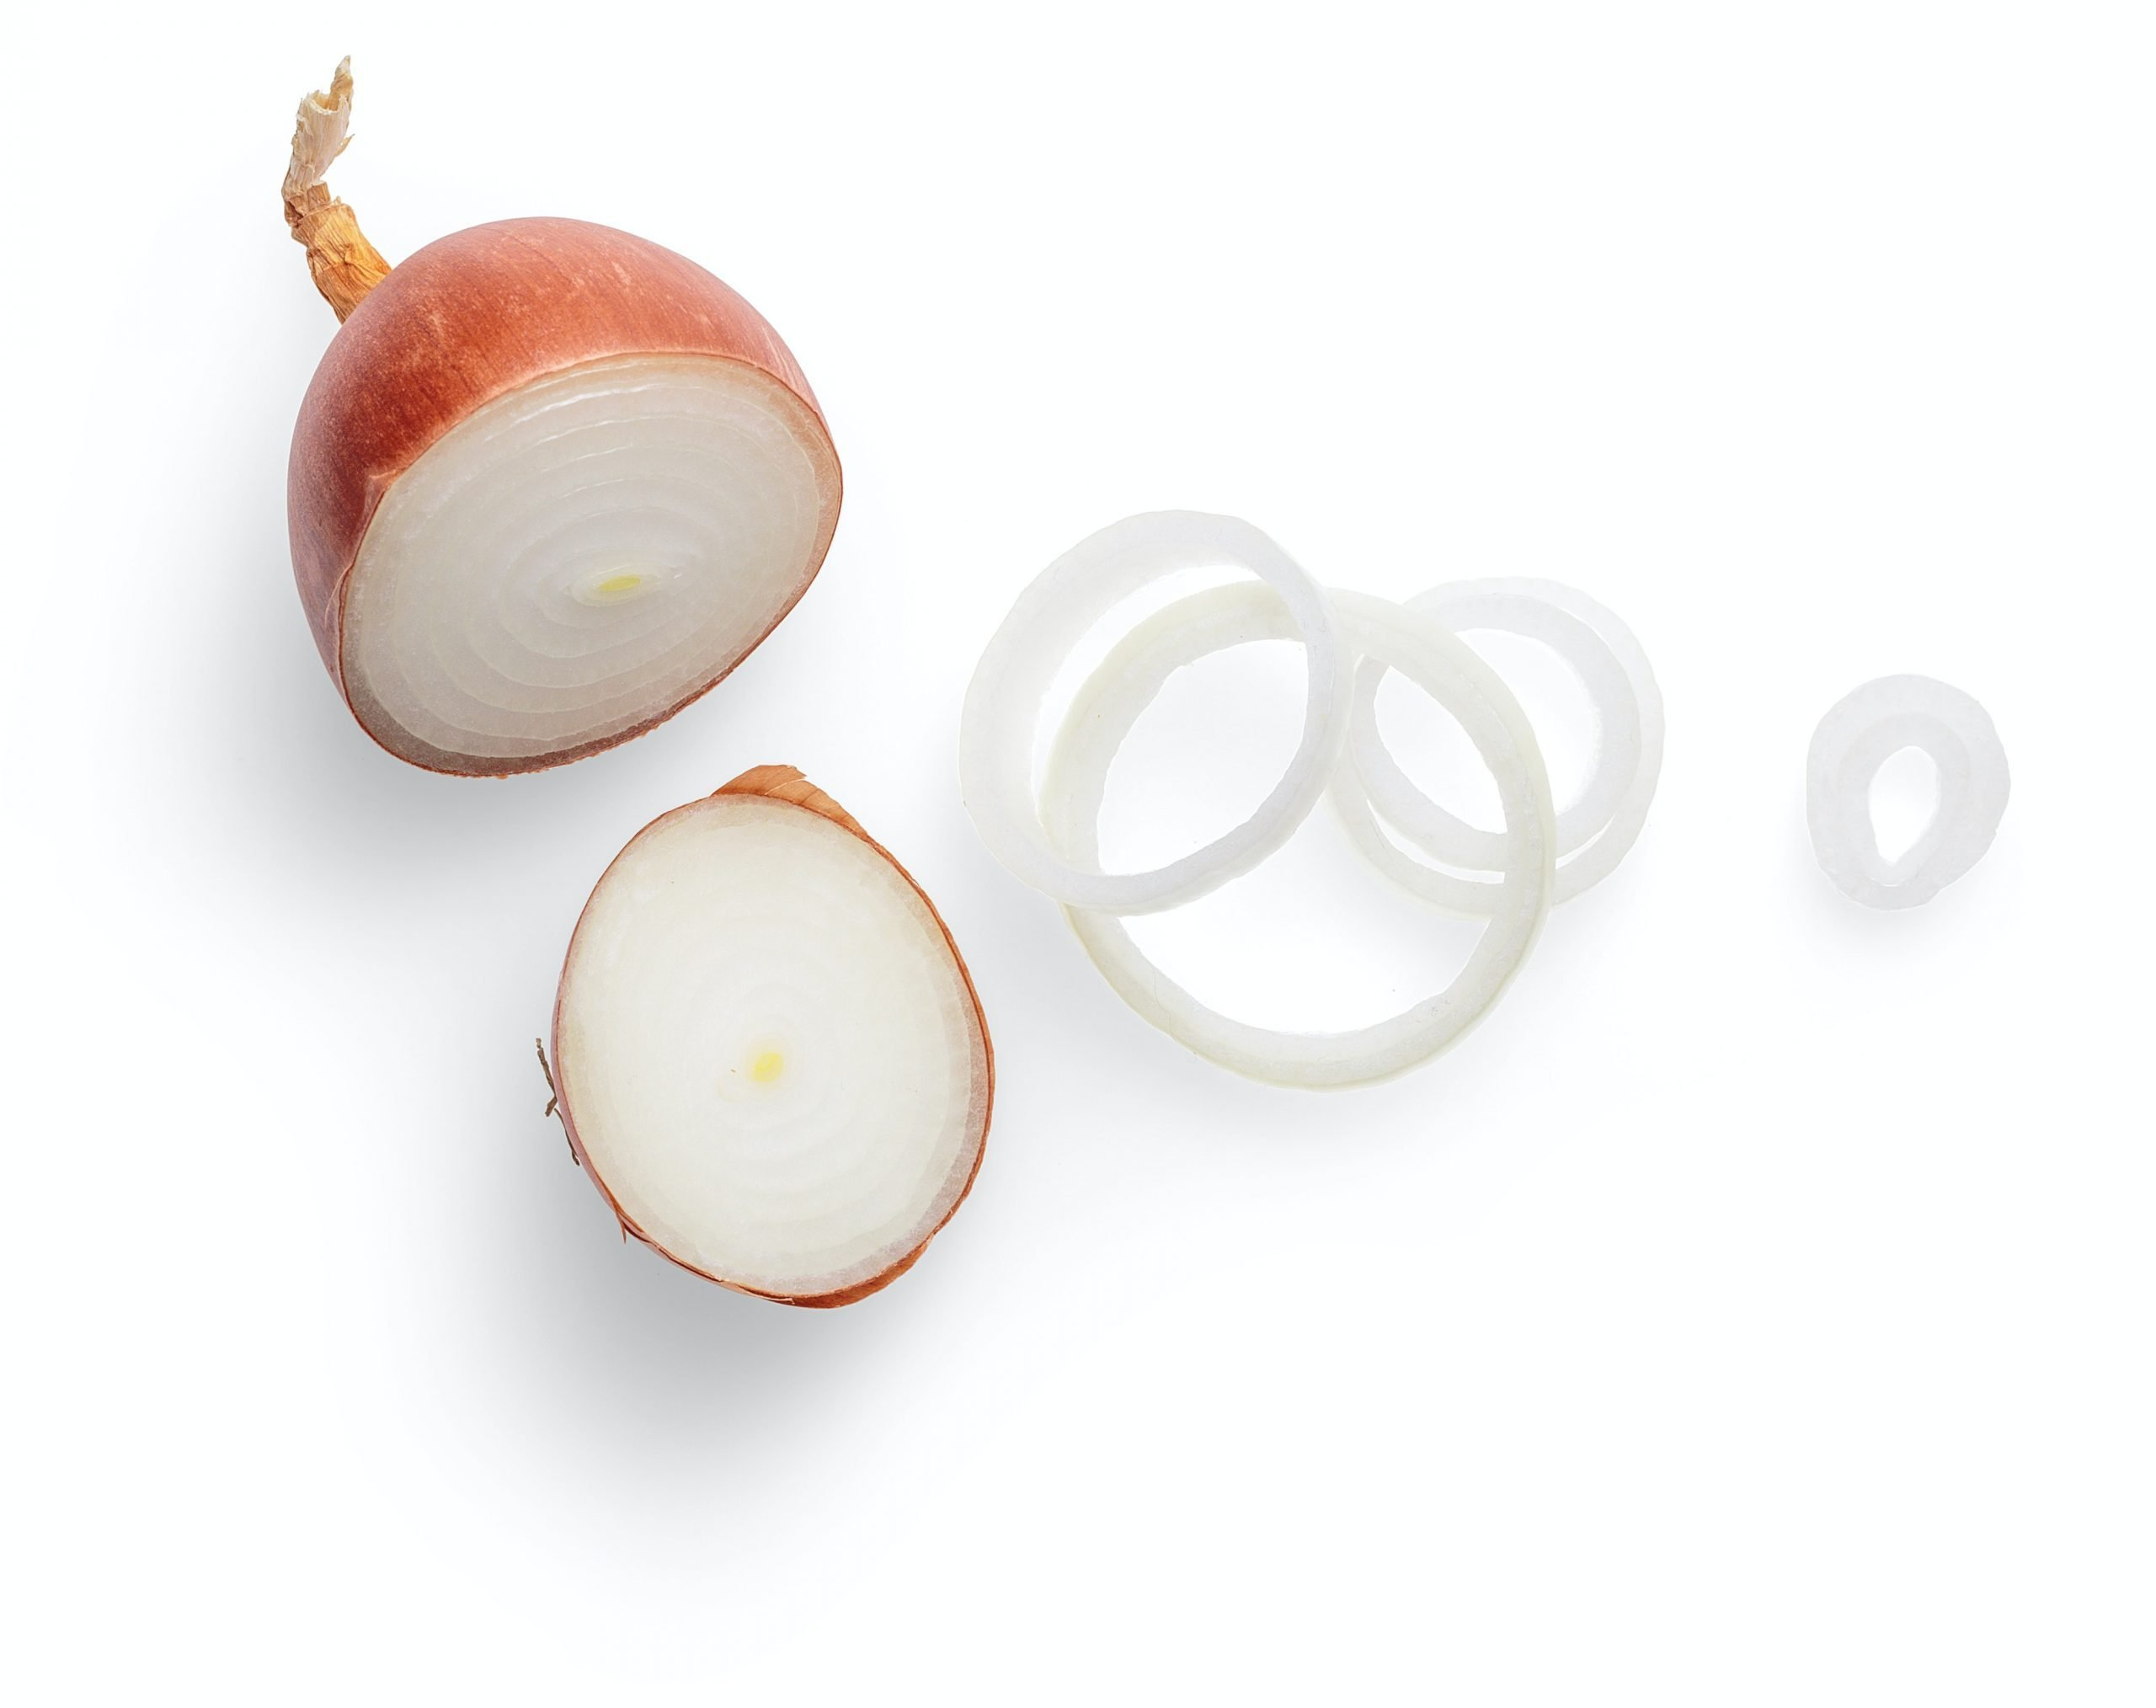 Yellow onion benefits for health are incredible due to quercetin